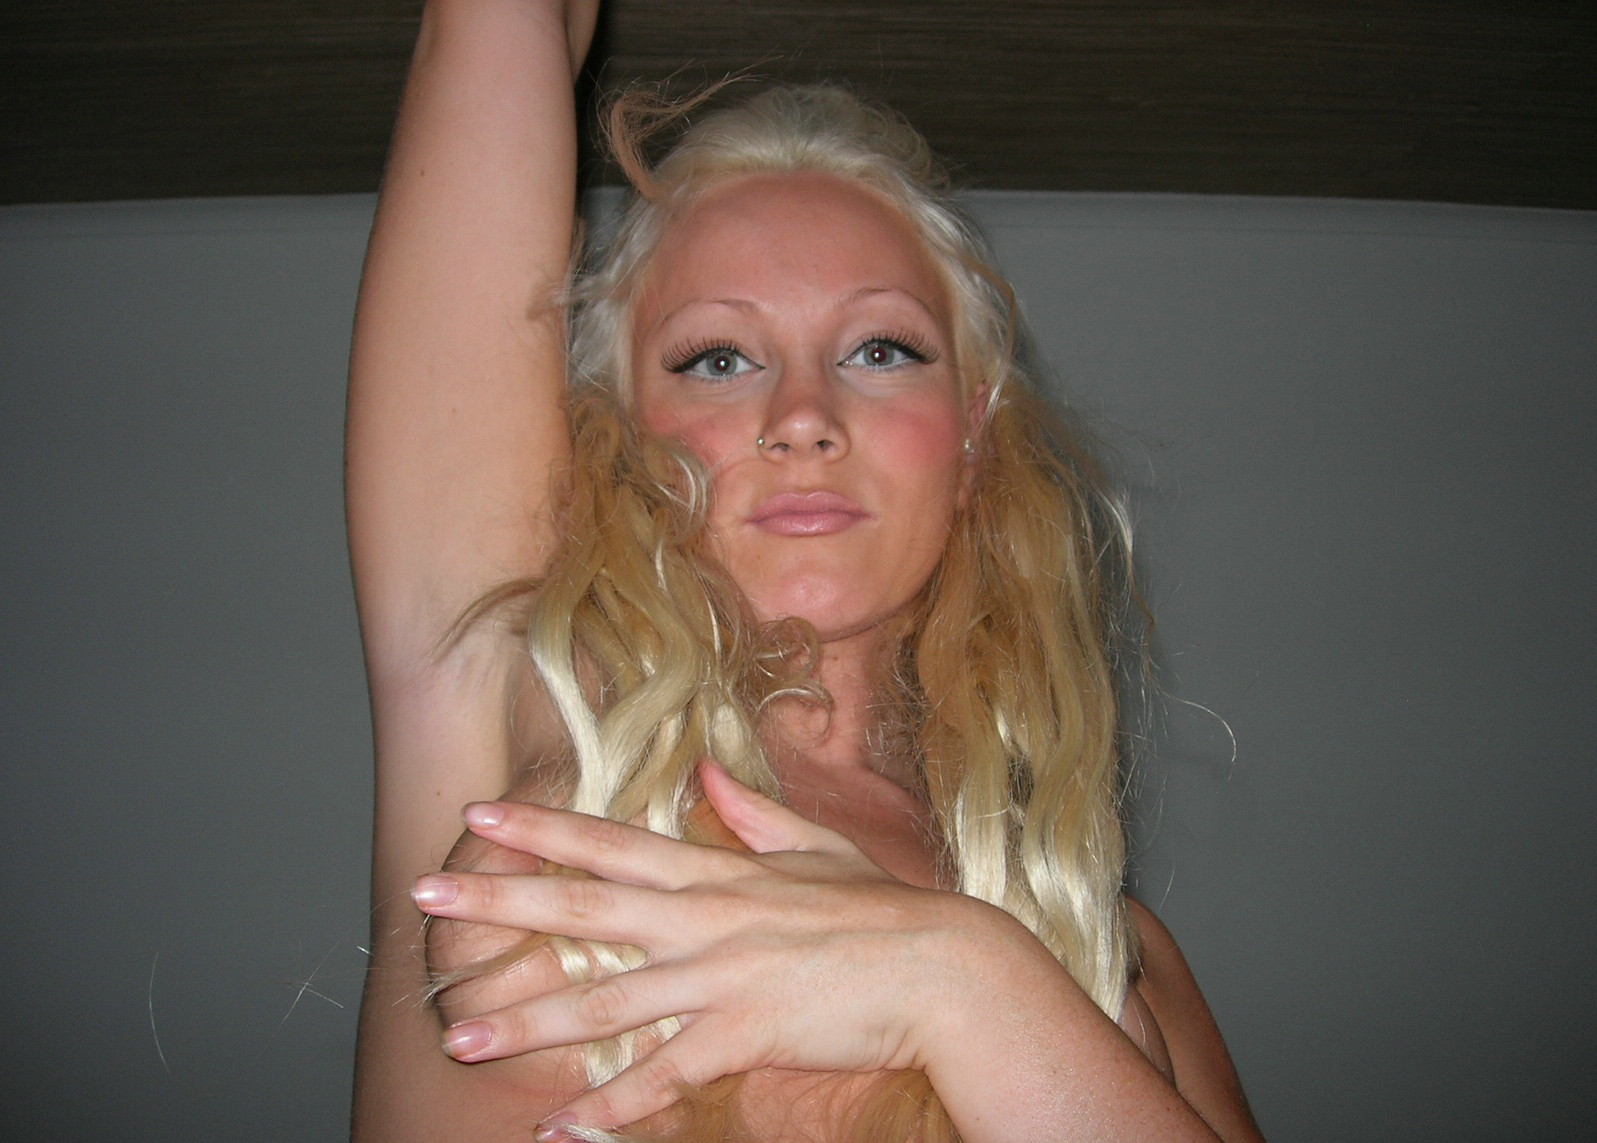 blonde-amateur-girl-from-sweden-young-naked-08